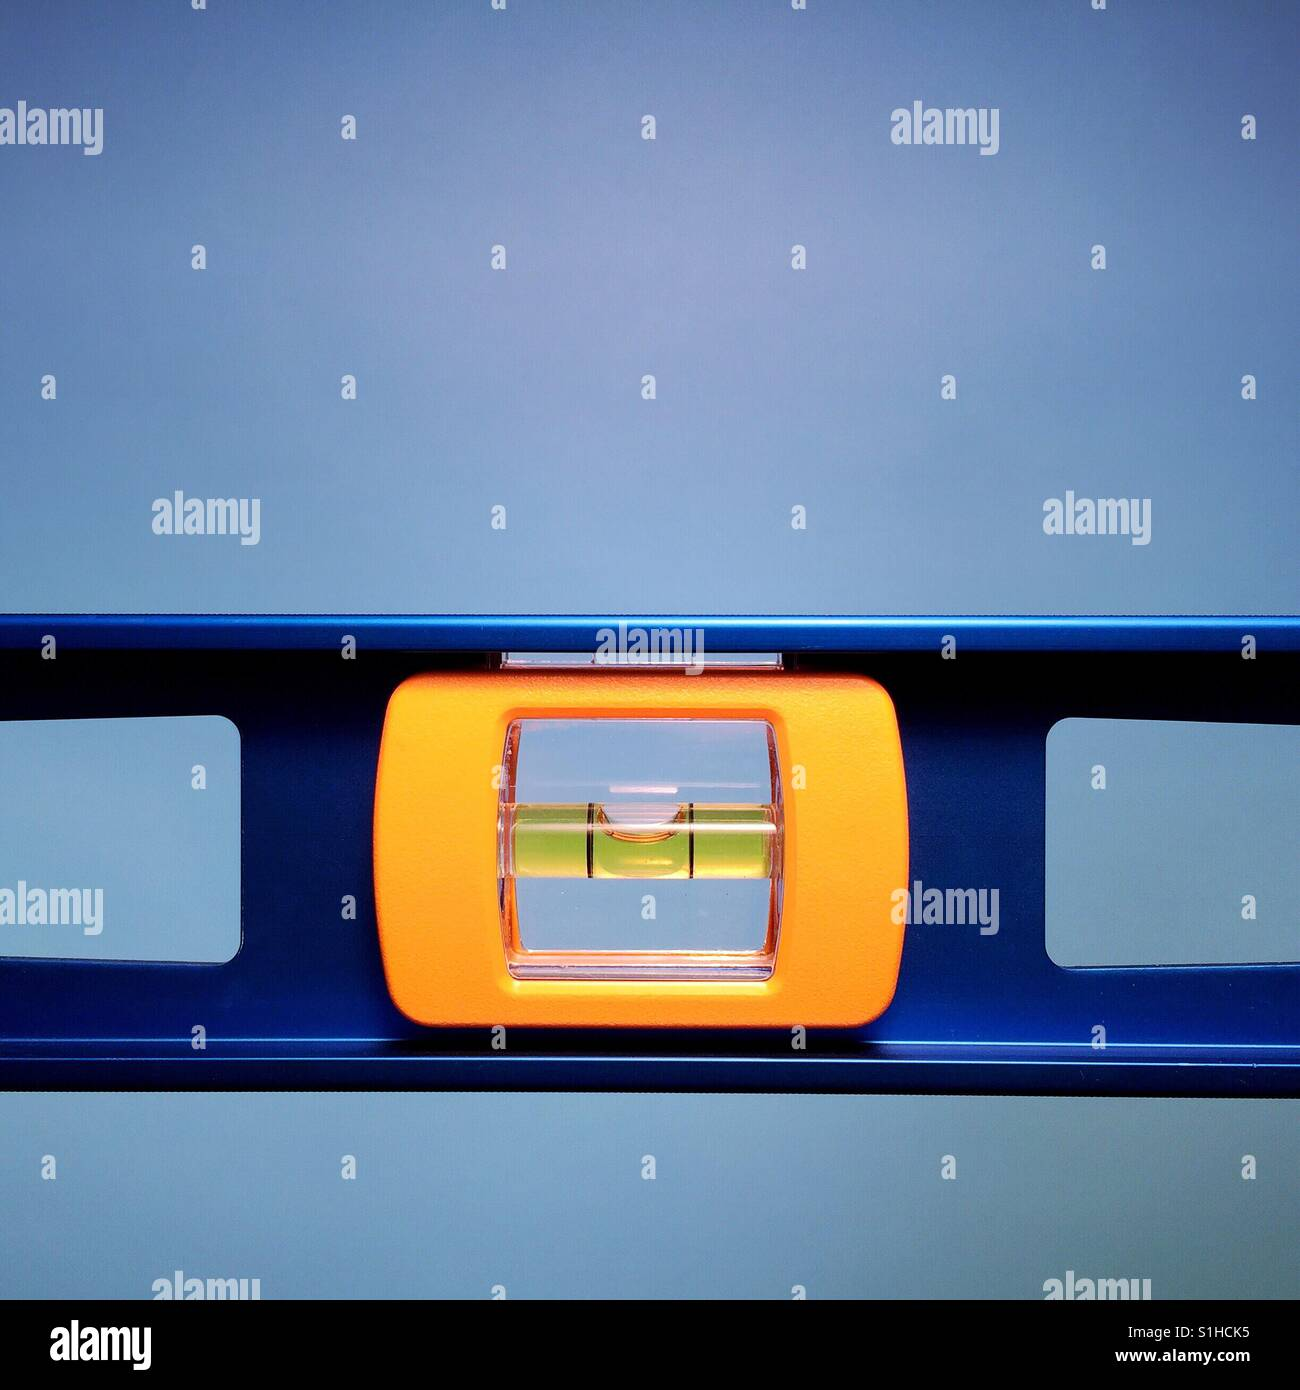 A close-up shot of a carpenter's level against a blue background - Stock Image